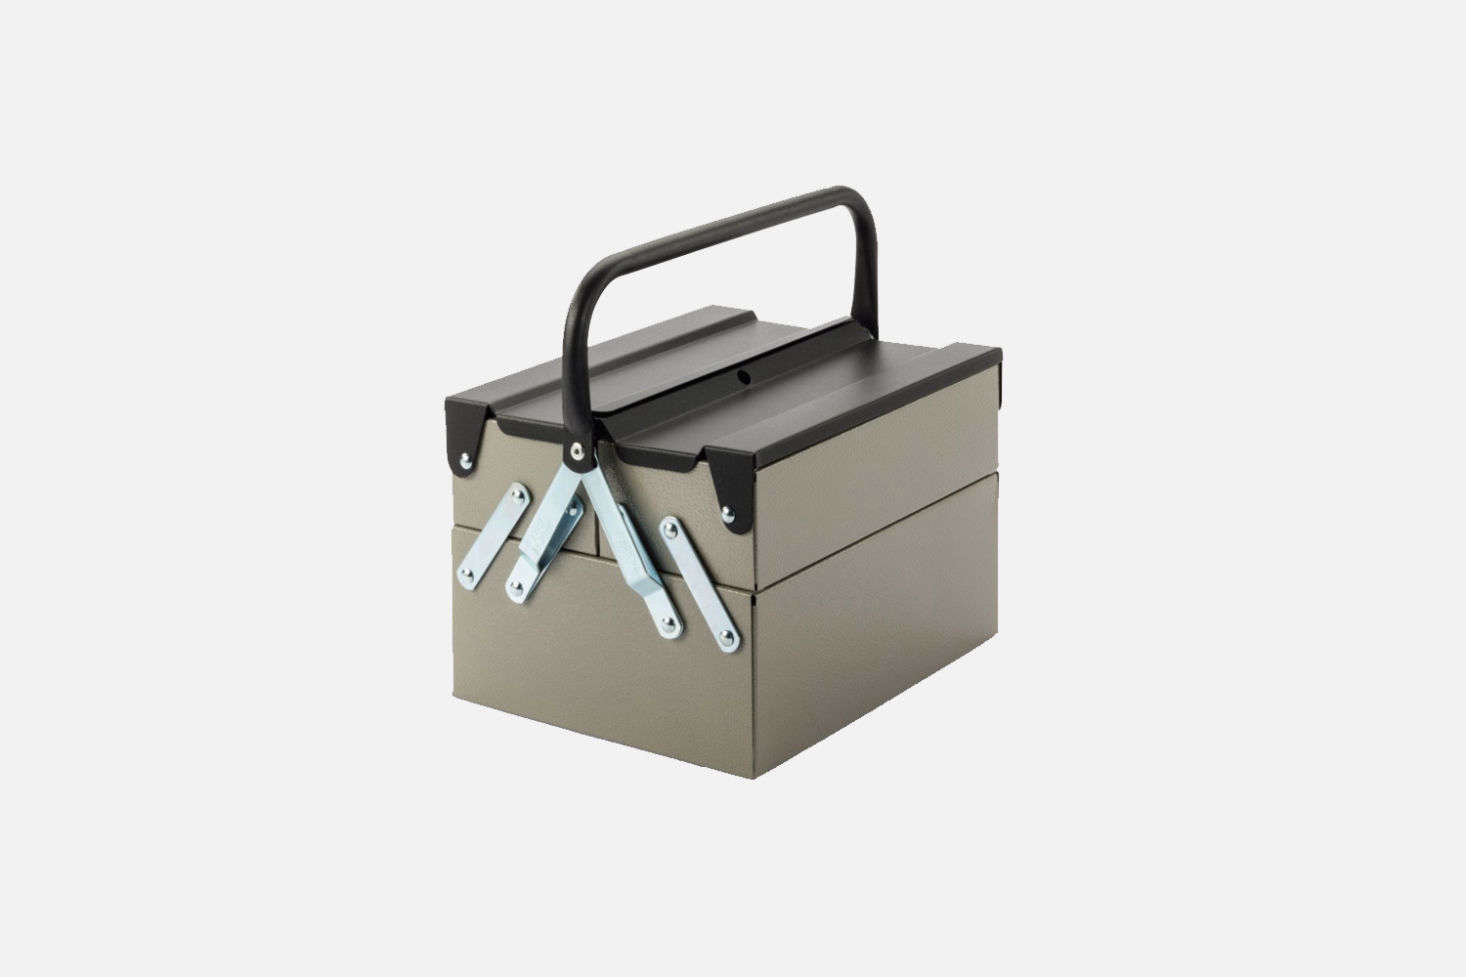 The Tool and Utensil Box Plus is available in Stone Grey/Anthracite (shown) or Light Grey/Fire Red is made of high-grade industrial quality with removable plastic insert trays; €43 at Manufactum.